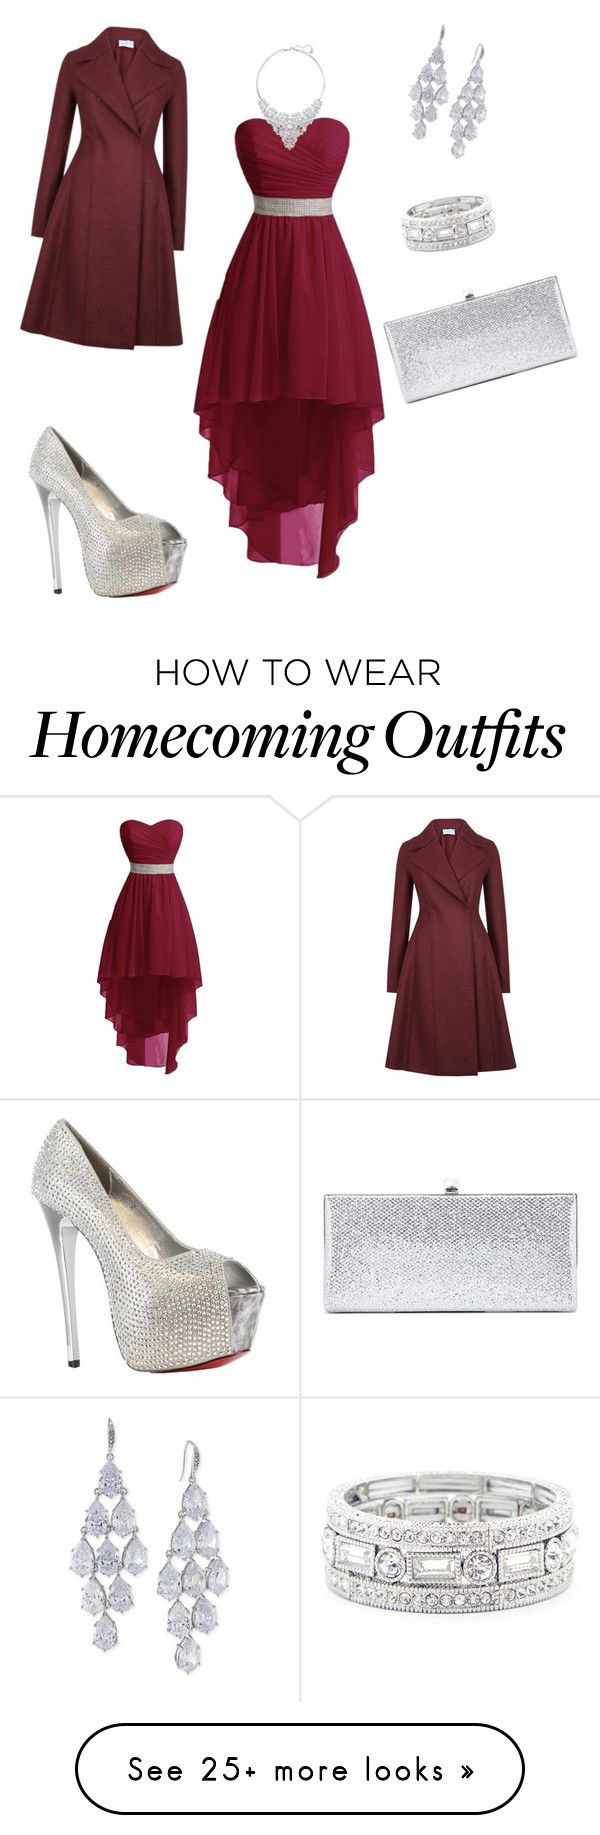 """Prom"" by amiyafulton037 on Polyvore featuring Swarovski, Harris Wharf London, Sole Society, Carolee, Jimmy Choo and Ellie"